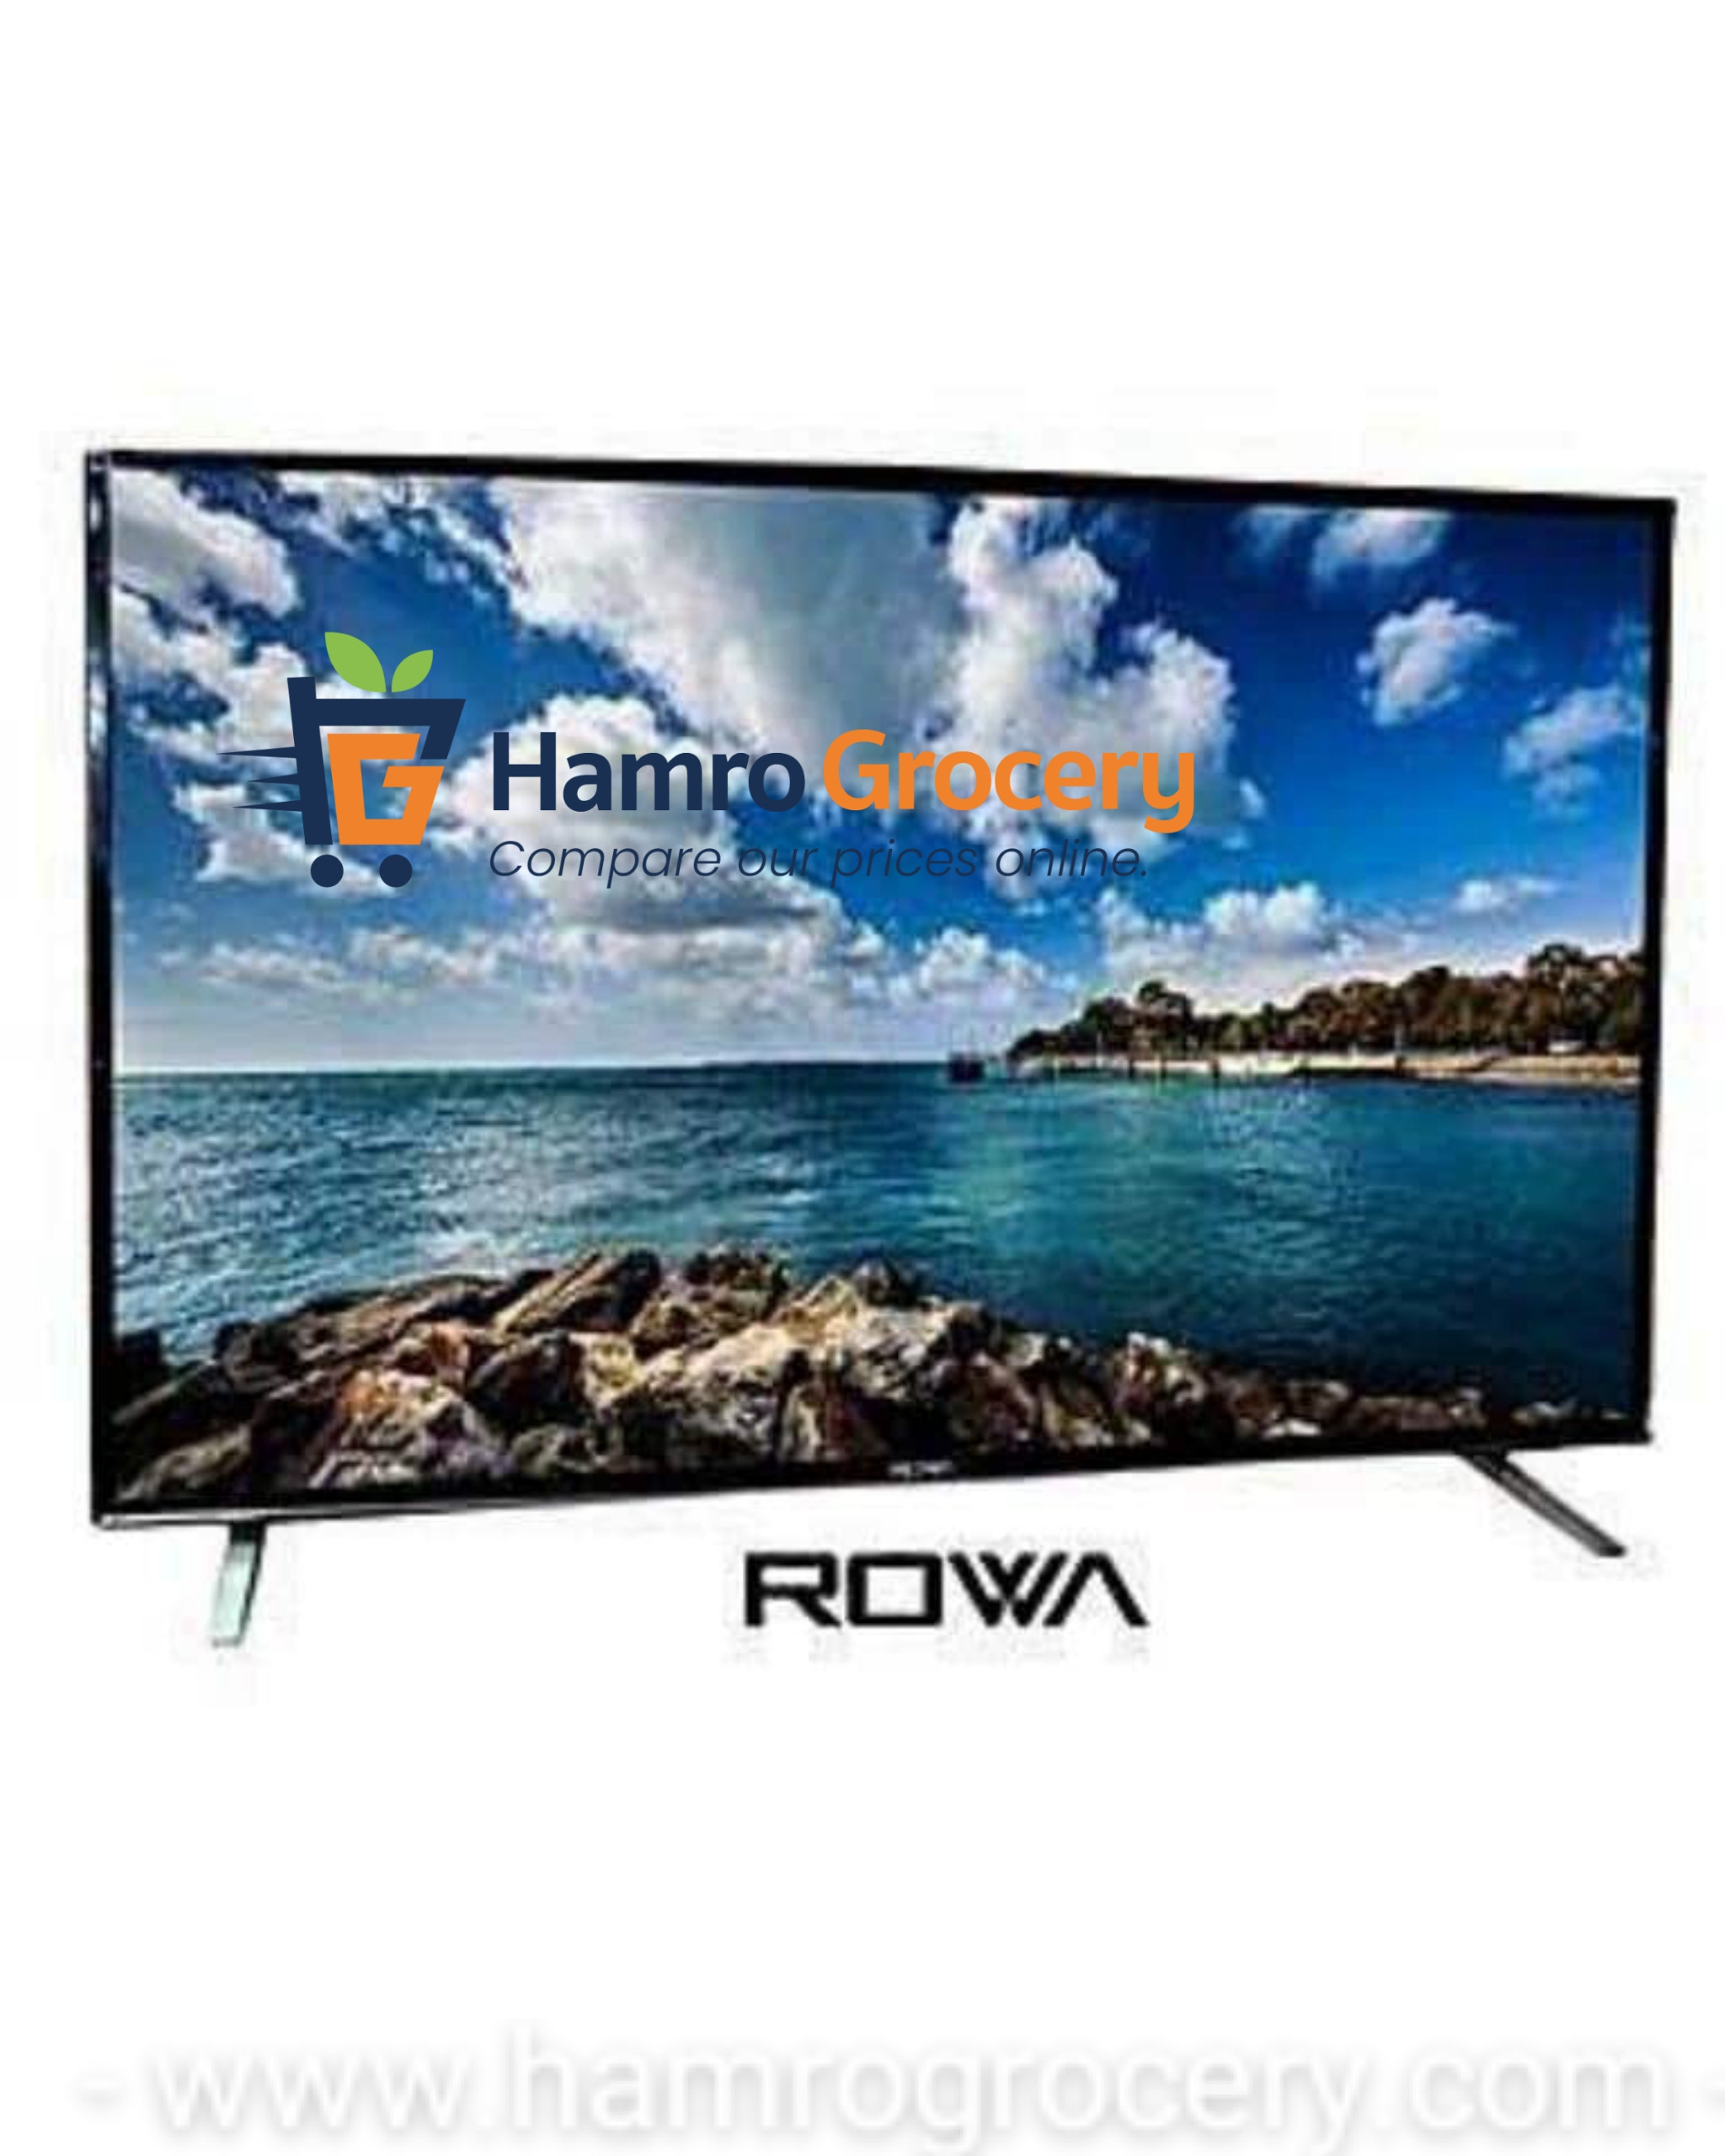 ROWA 49 Inch SMART ANDROID HD LED TV (TELEVISION) (49D1291A)